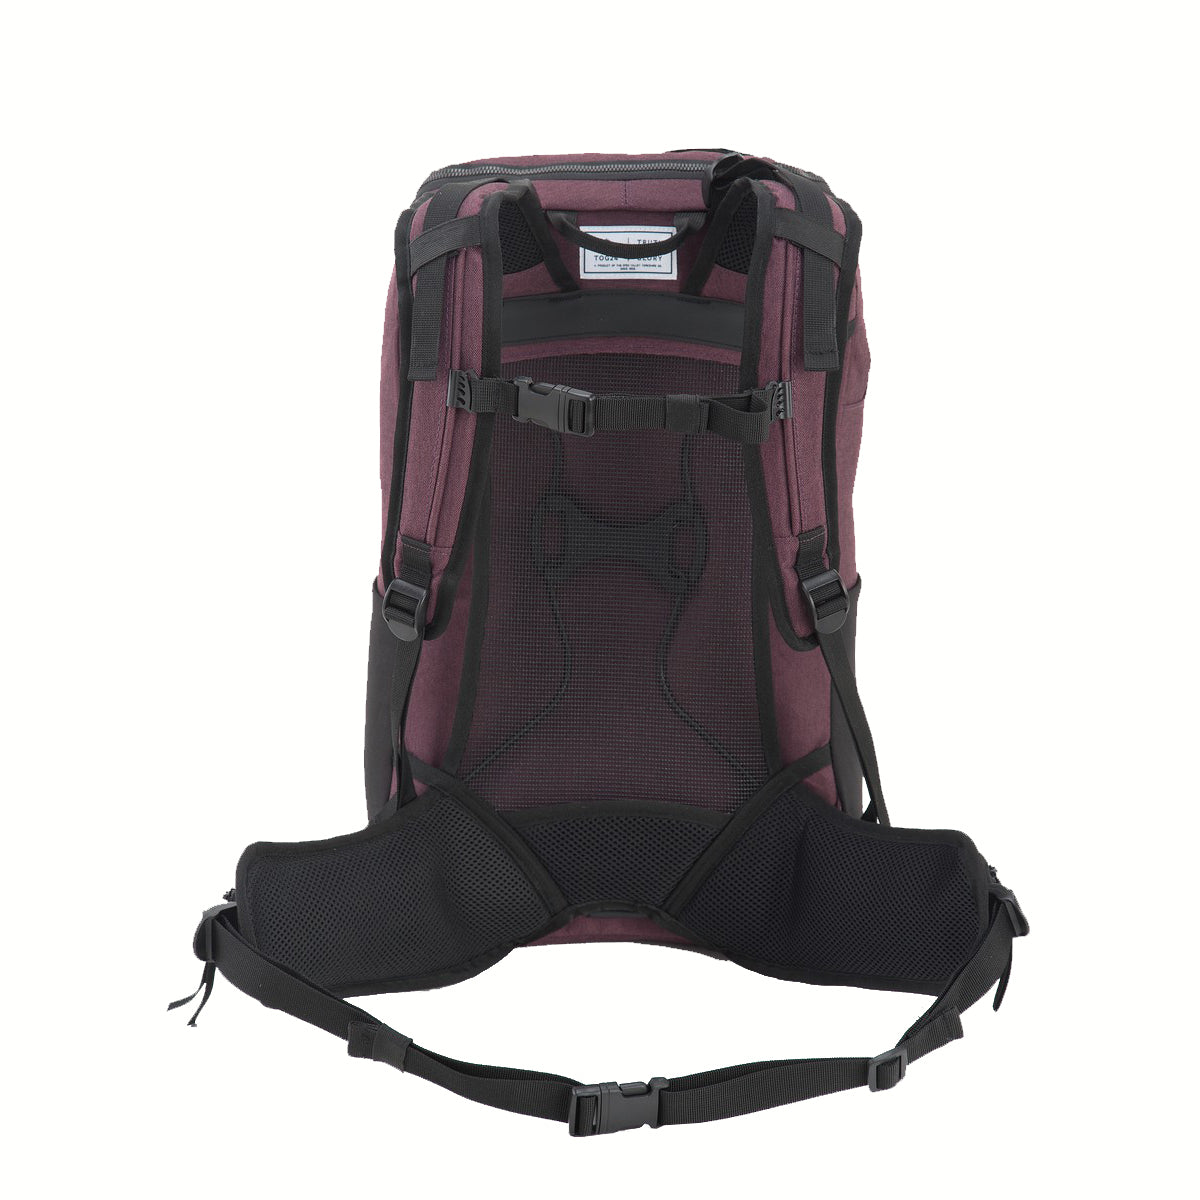 Flint 30L Technical Backpack - Deep Port Marl image 4